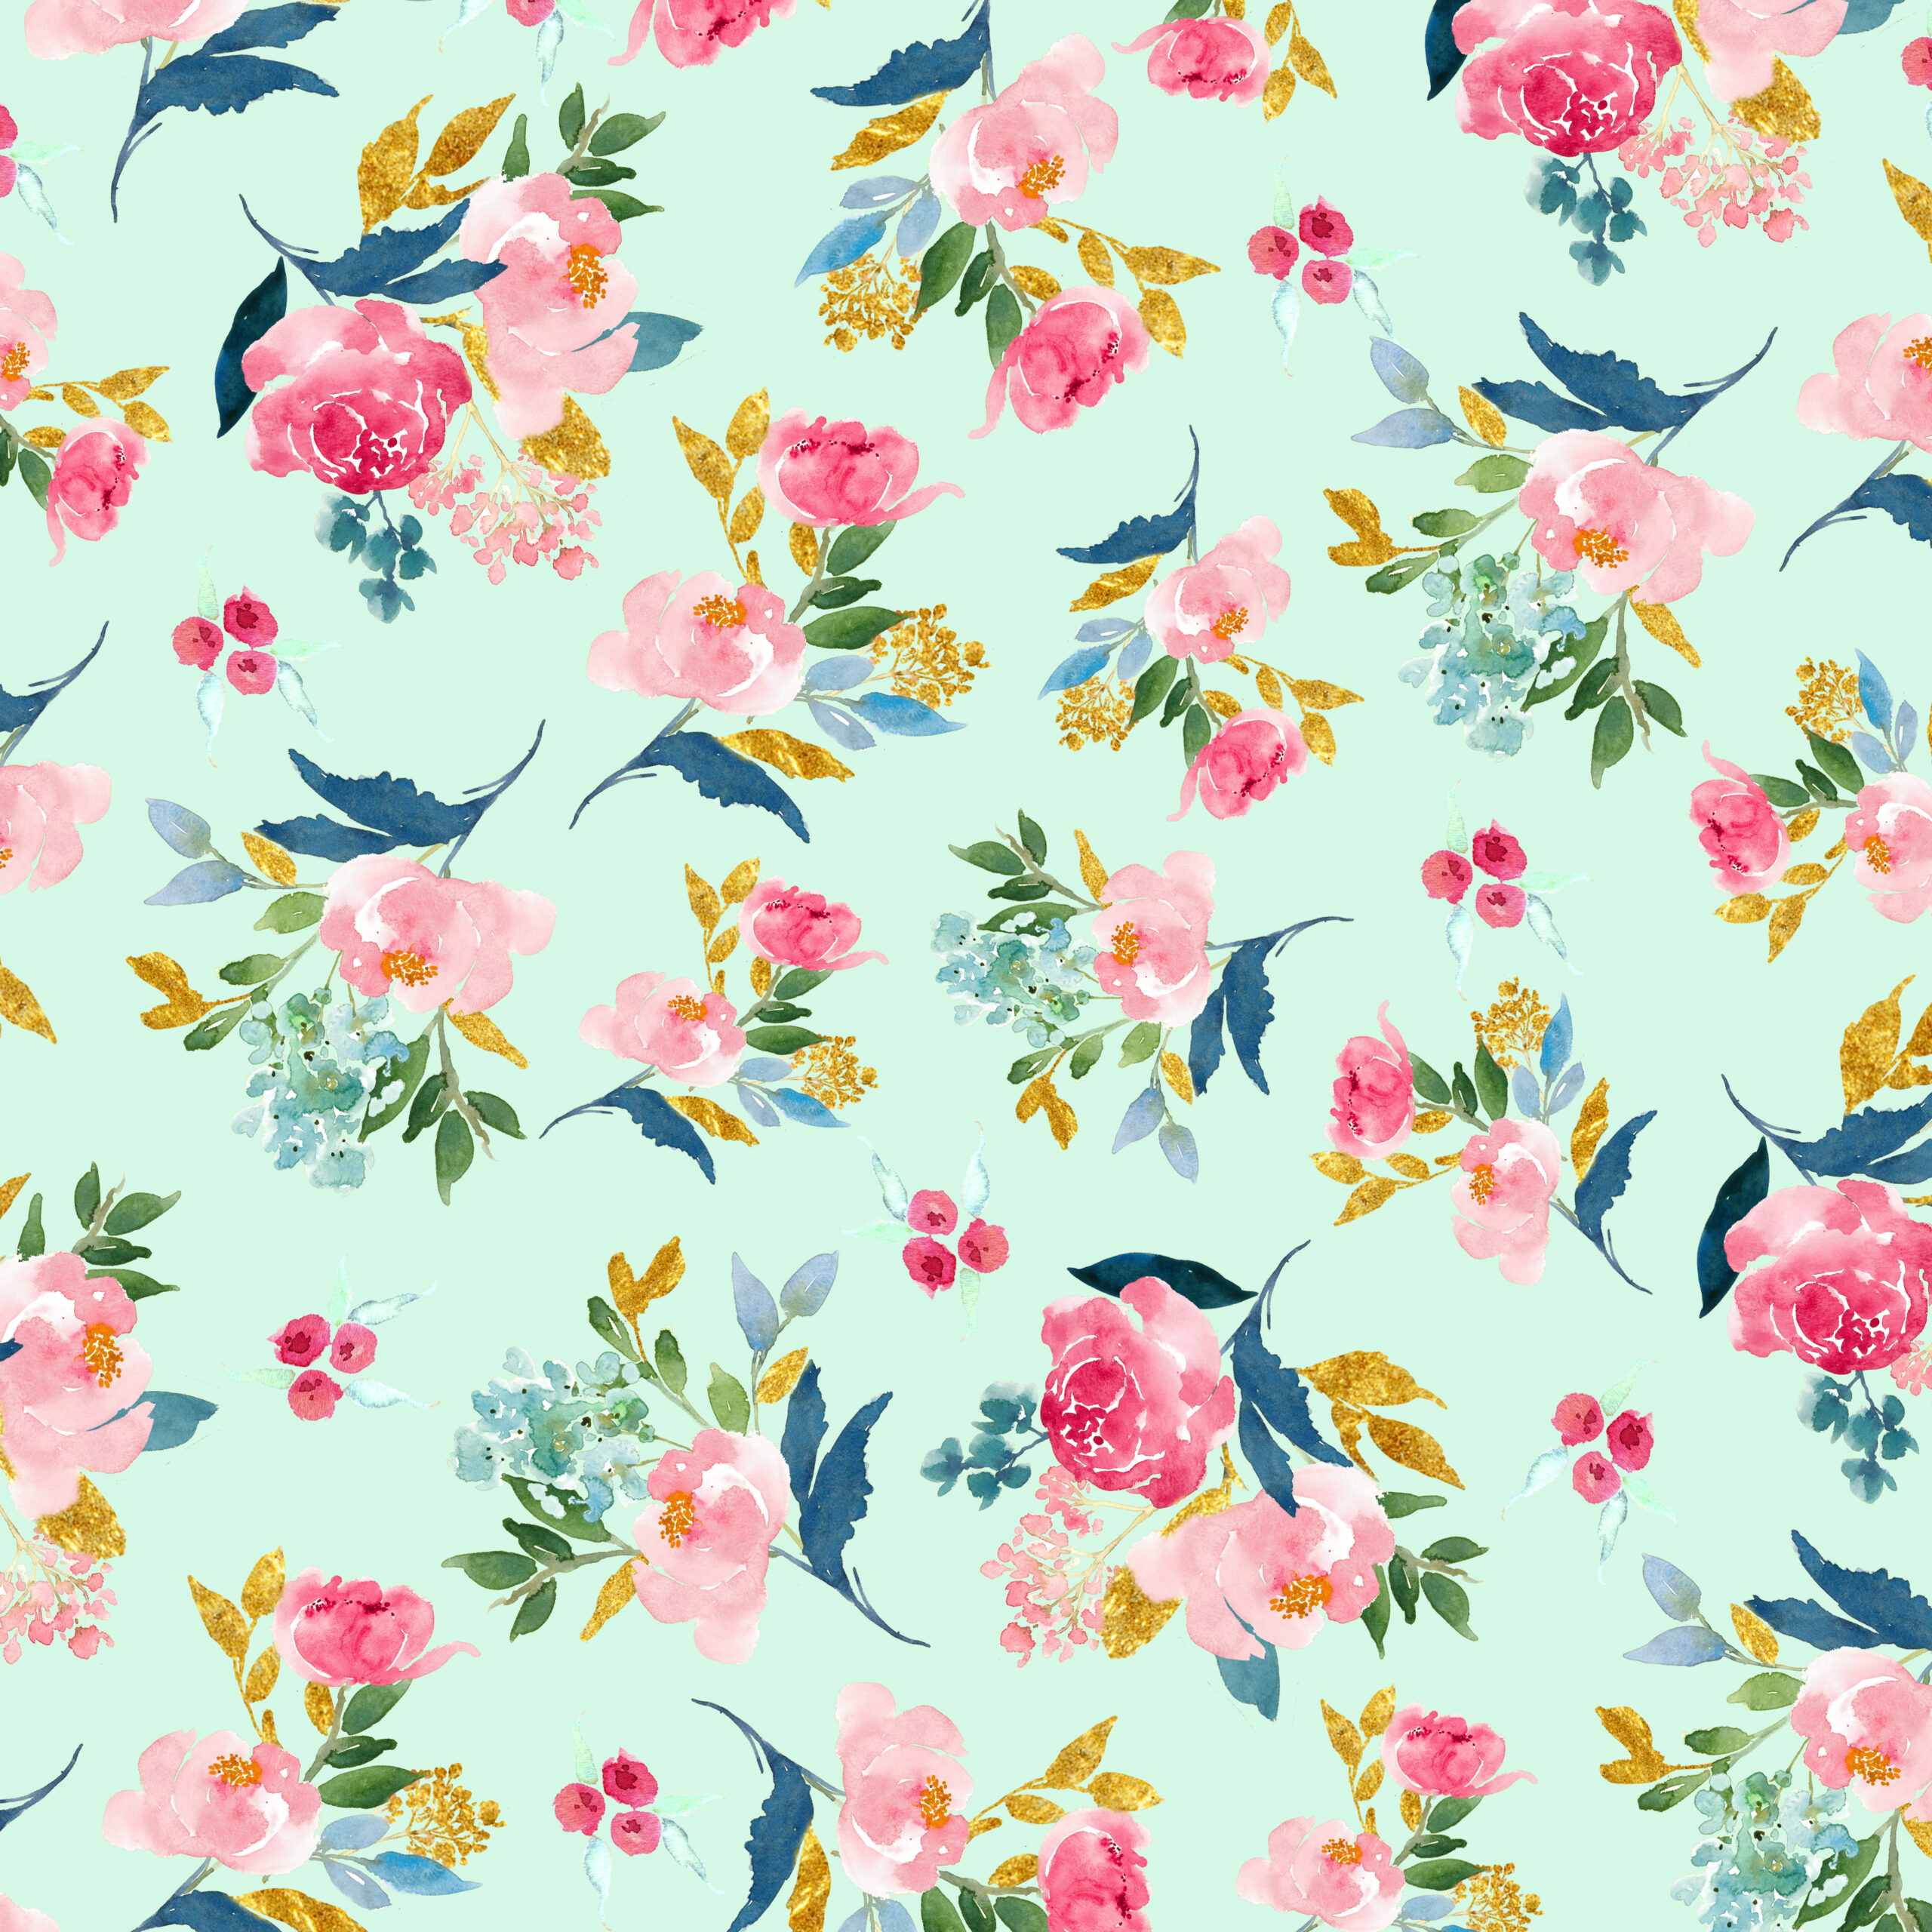 Scrapbook paper as wallpaper - Btw The Gorgeous Floral Papers